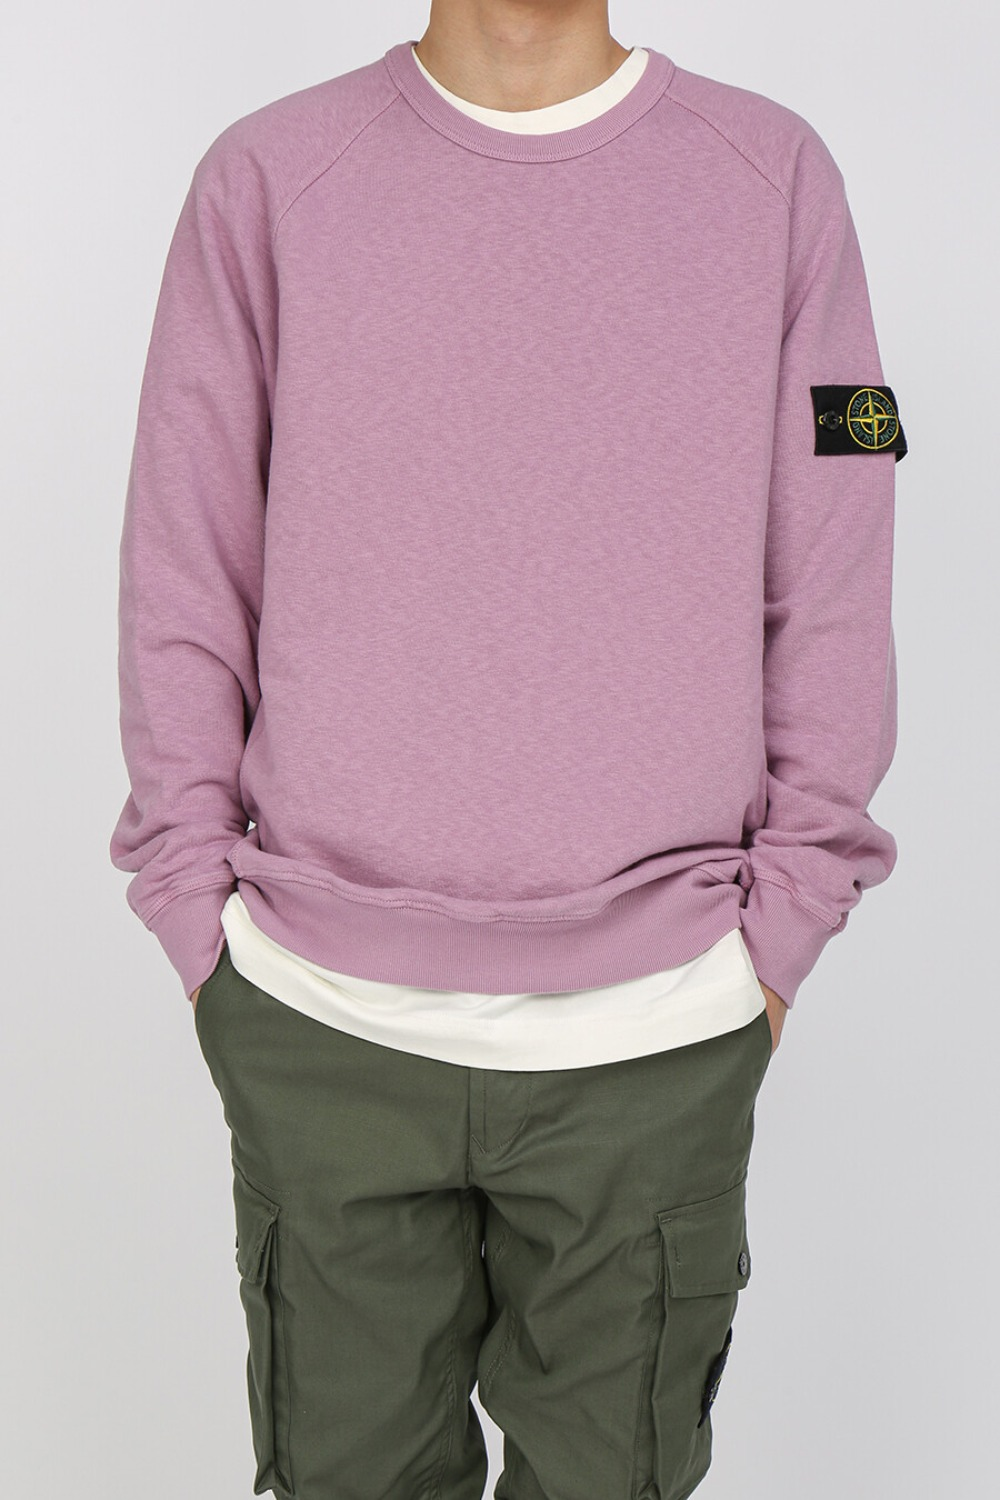 OLD EFFECT BRUSHED COTTON SWEATSHIRT PINK